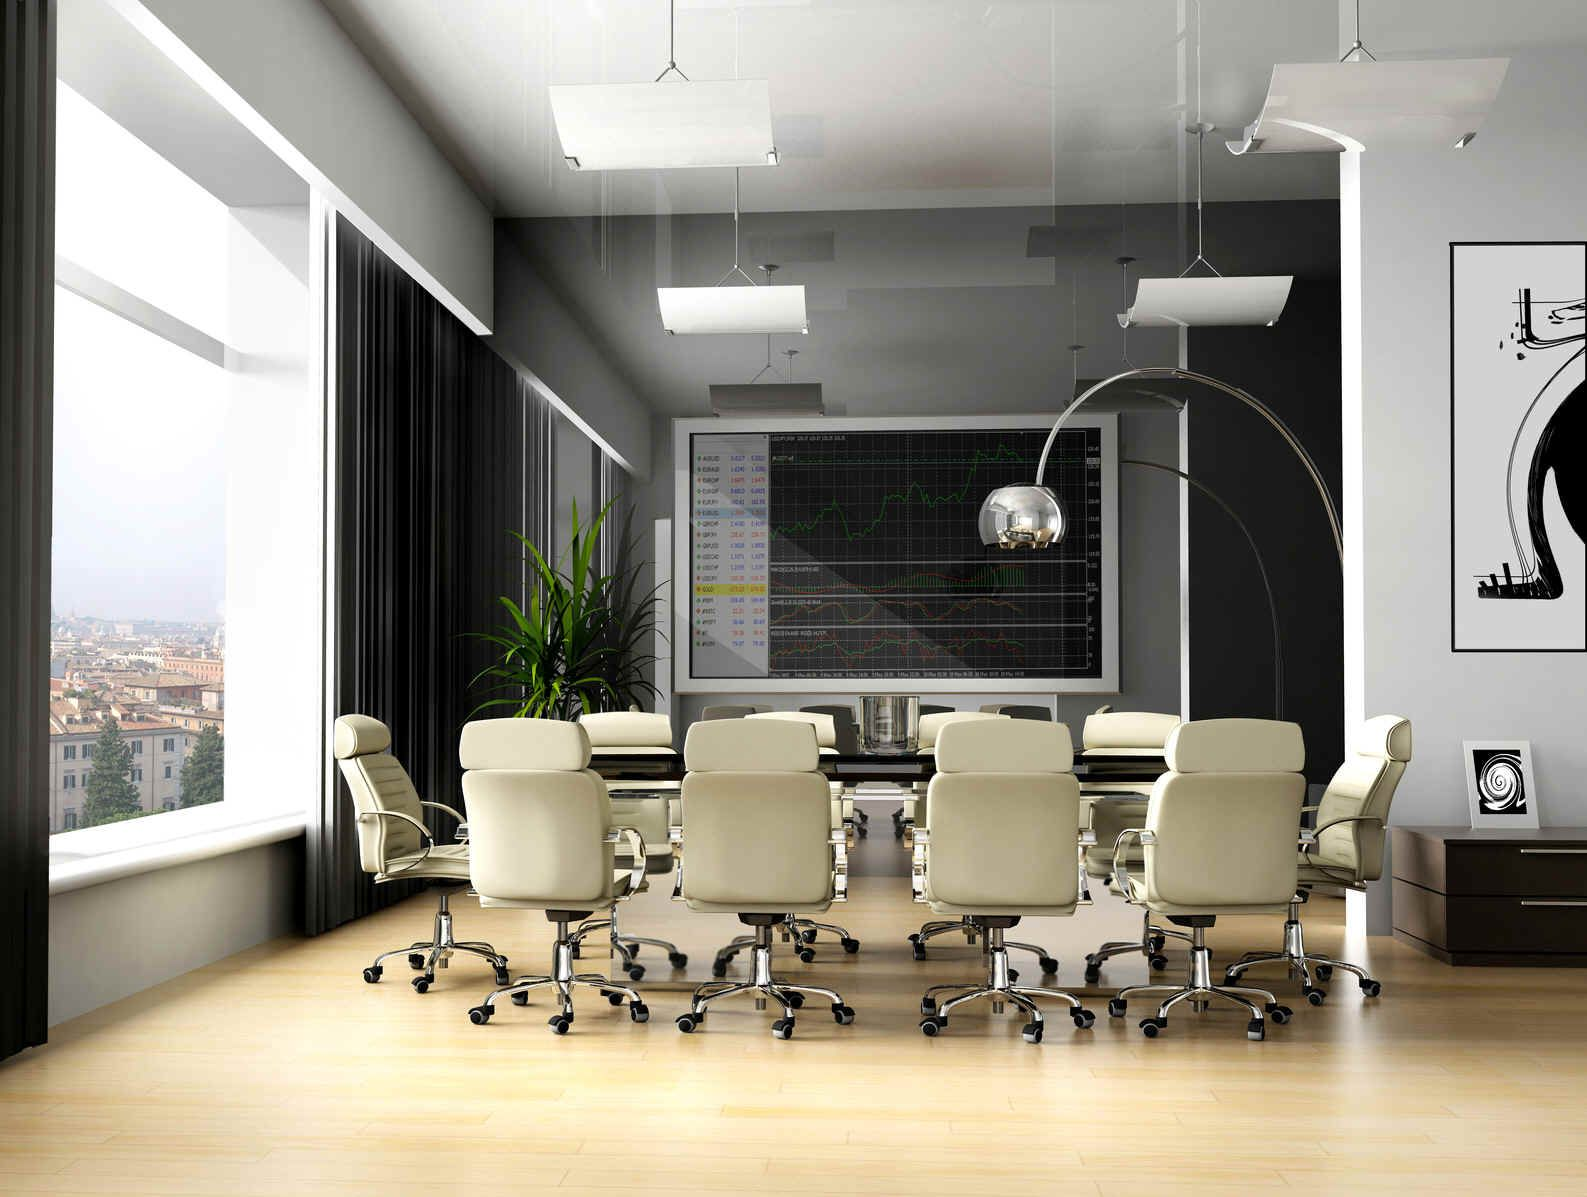 The Most Inspiring Office Decoration Designs | Office ...